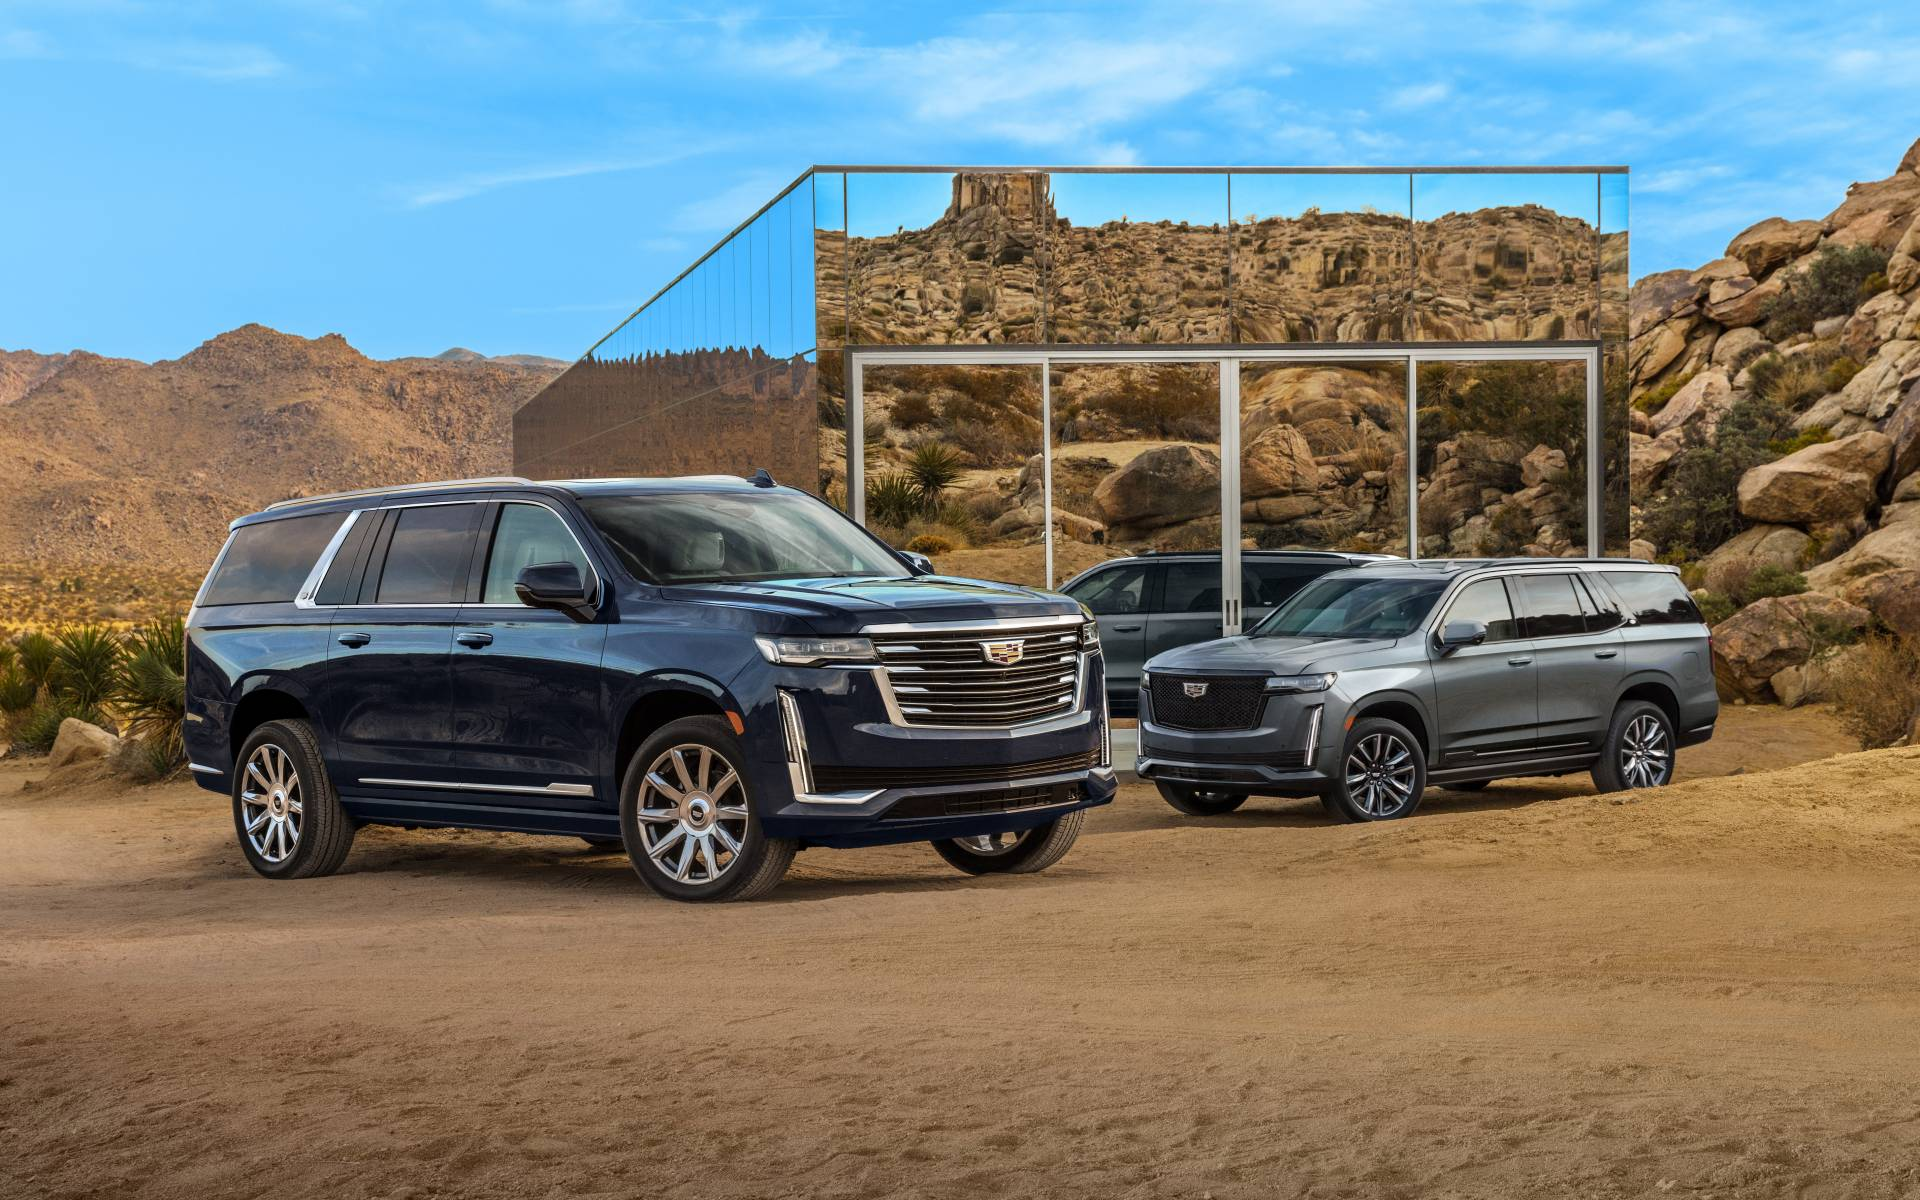 2021 cadillac escalade pricing and equipment details